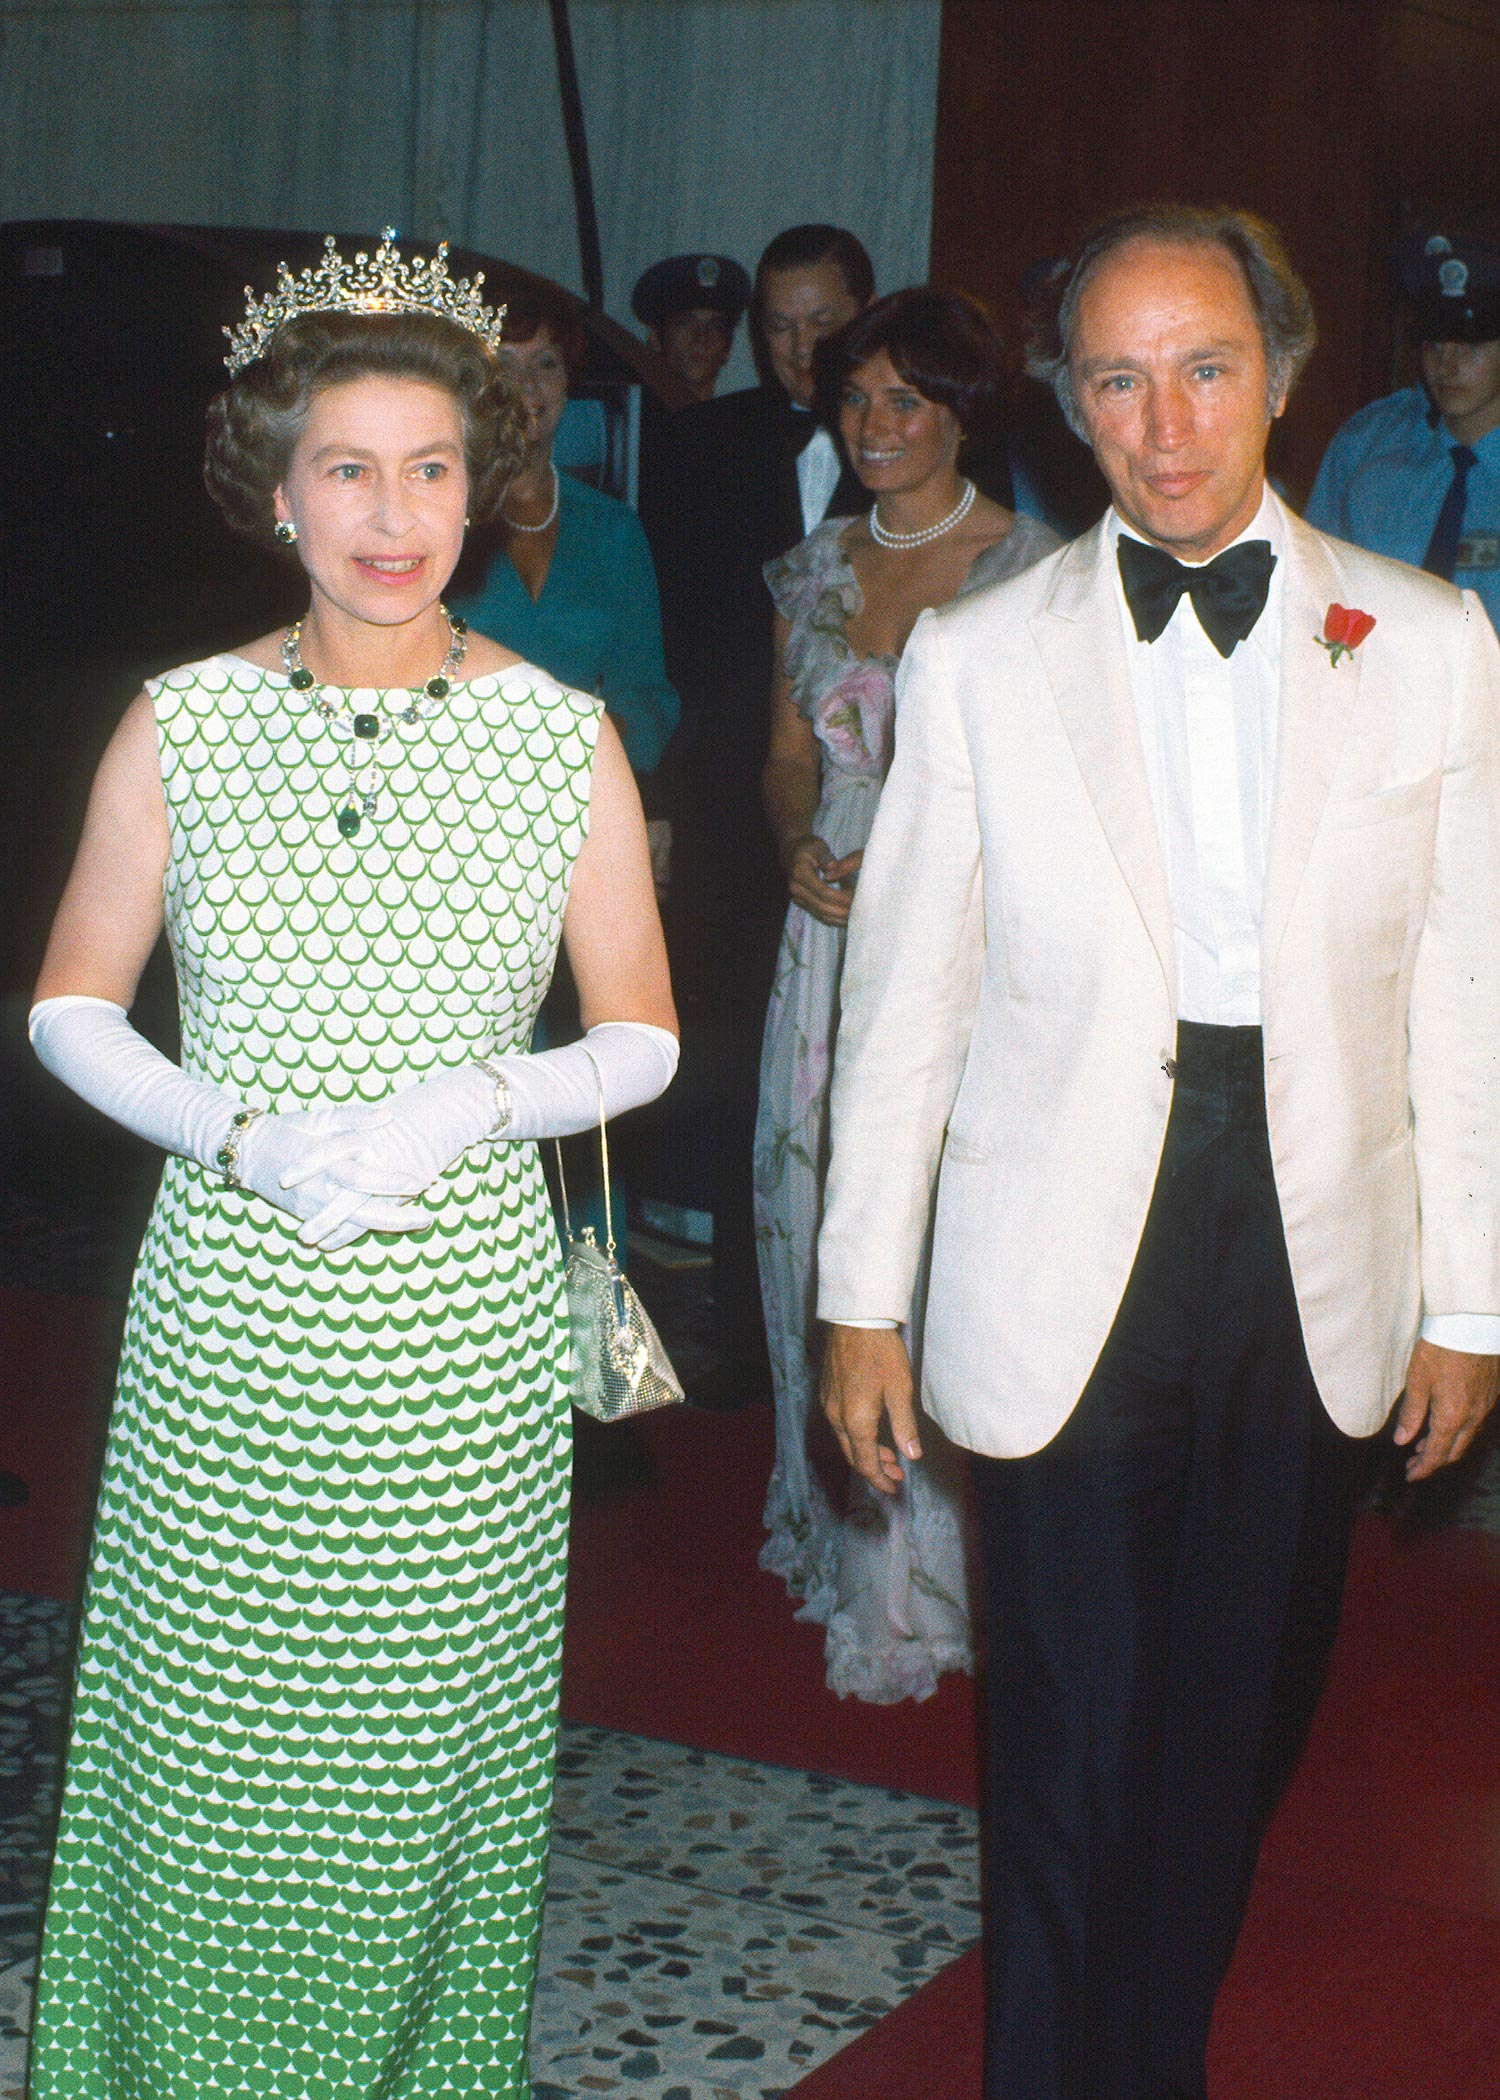 CANADA - AUGUST 01: Queen Elizabeth ll, wearing the tiara known as 'Granny's Tiara', and Canadian Prime Minister Pierre Trudeau attend a formal event on August 01, 1976 in Canada. (Photo by Anwar Hussein/Getty Images)